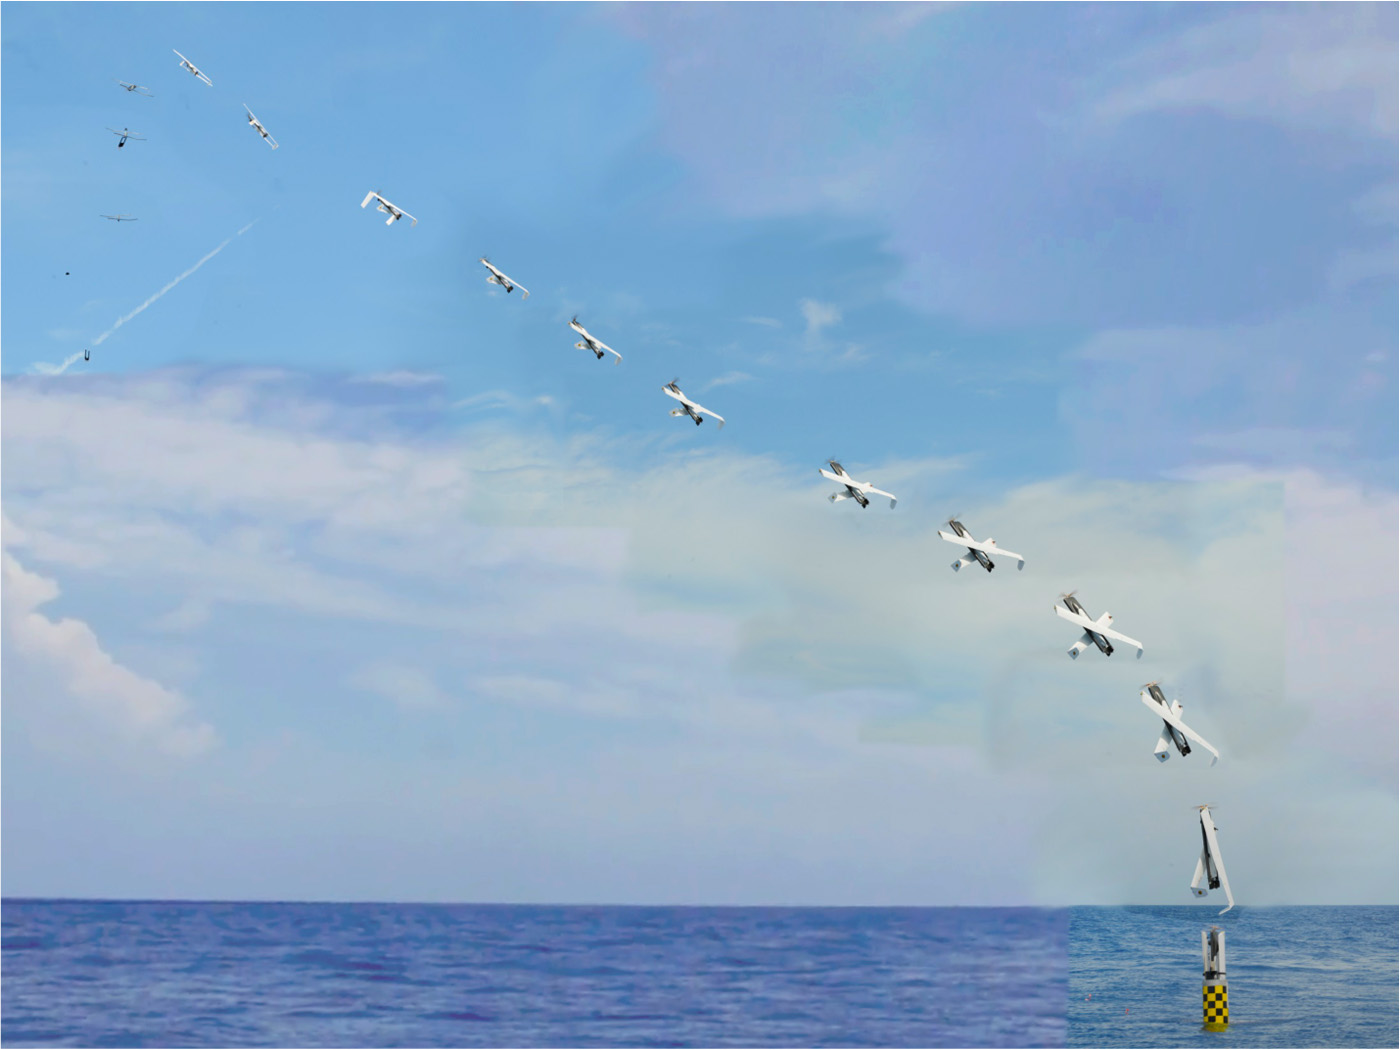 The Navy Just Launched a Drone from a Submarine -- While Underwater